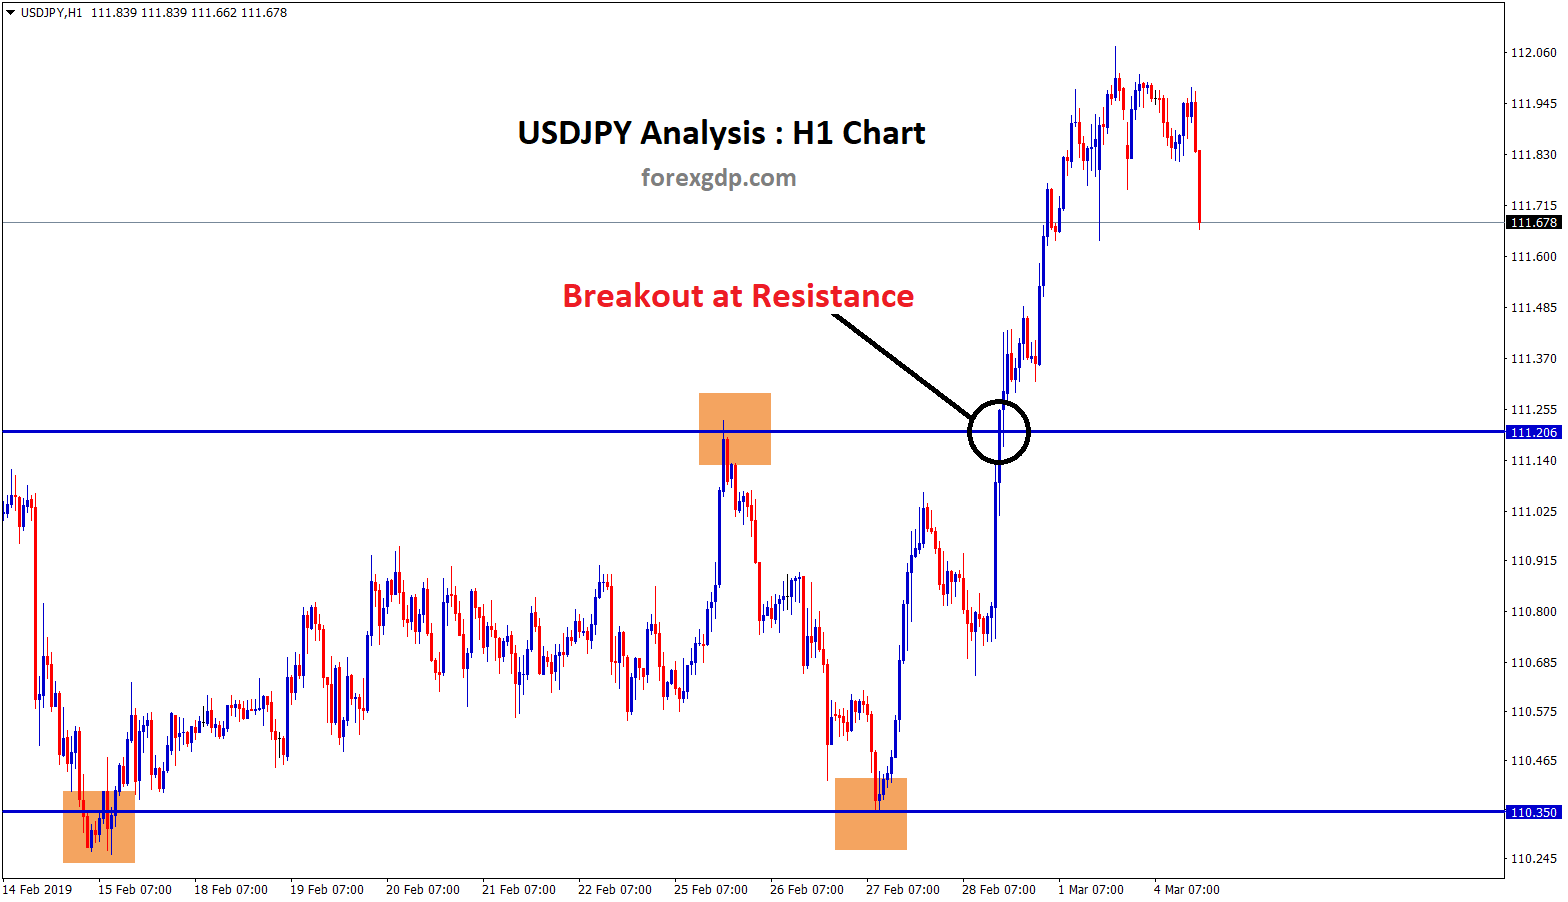 breakout at resistance level